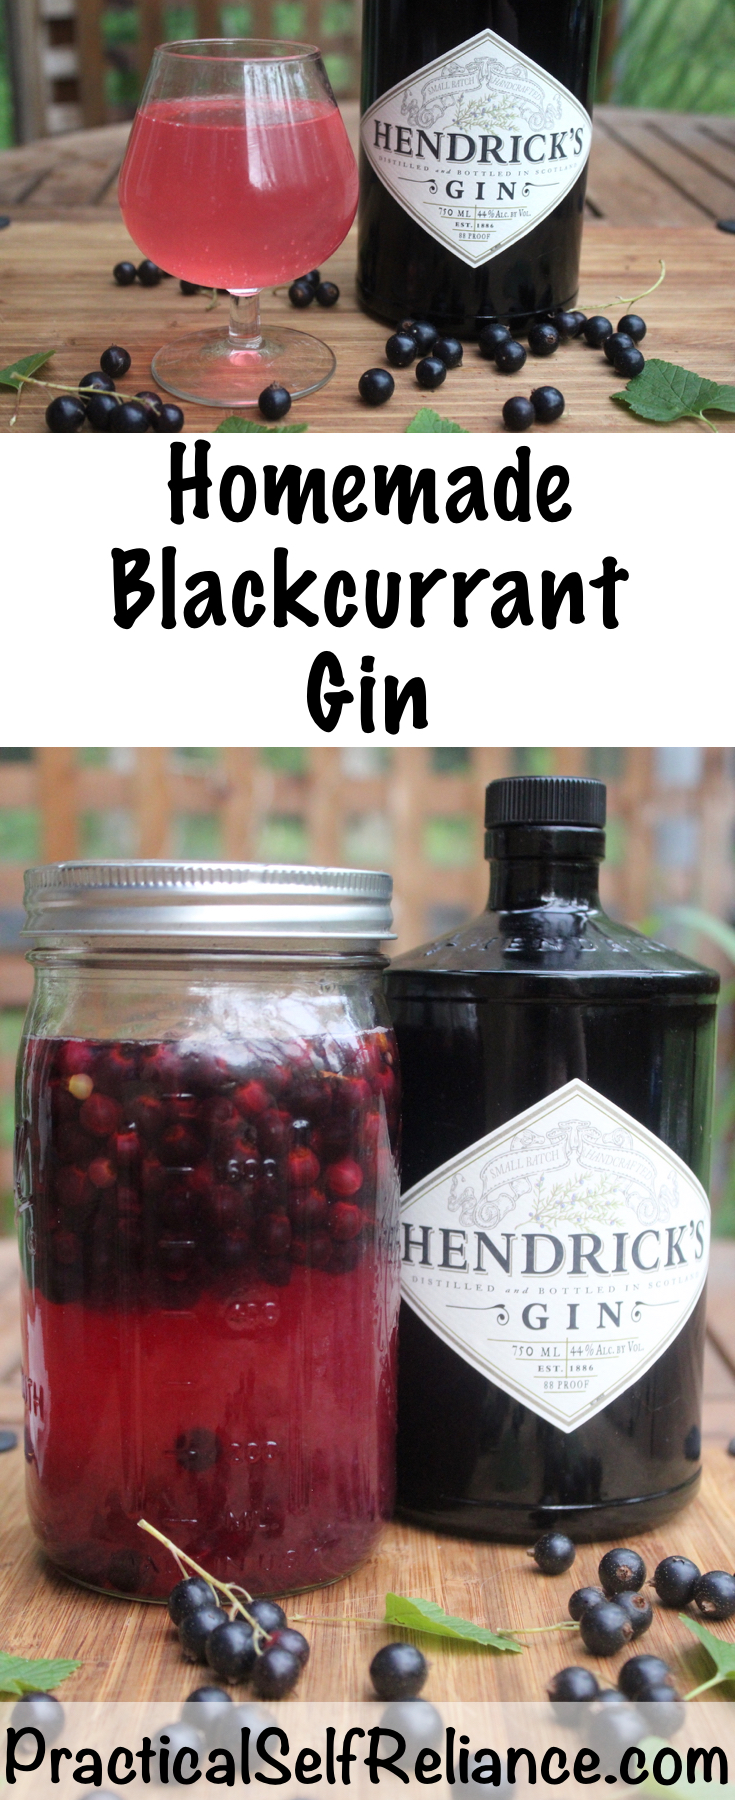 Homemade Blackcurrant Gin